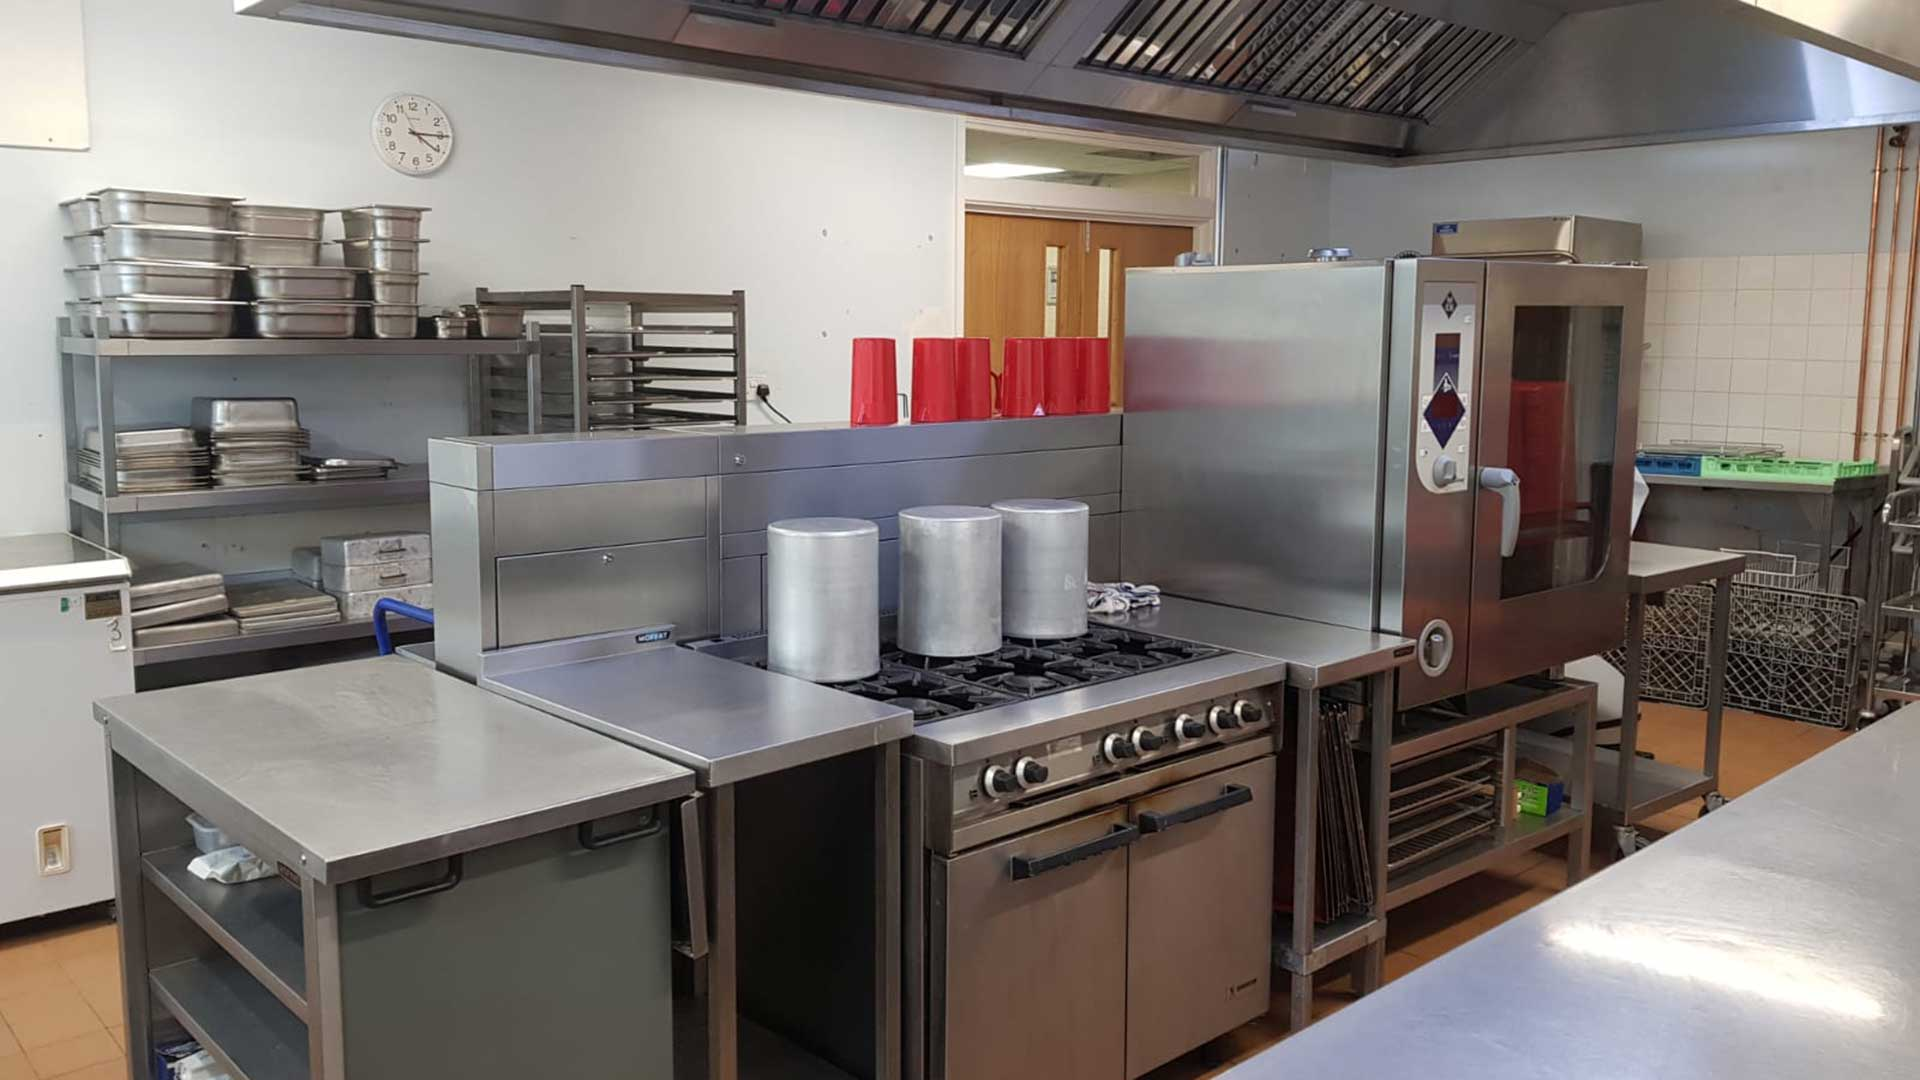 Very clean commercial kitchen